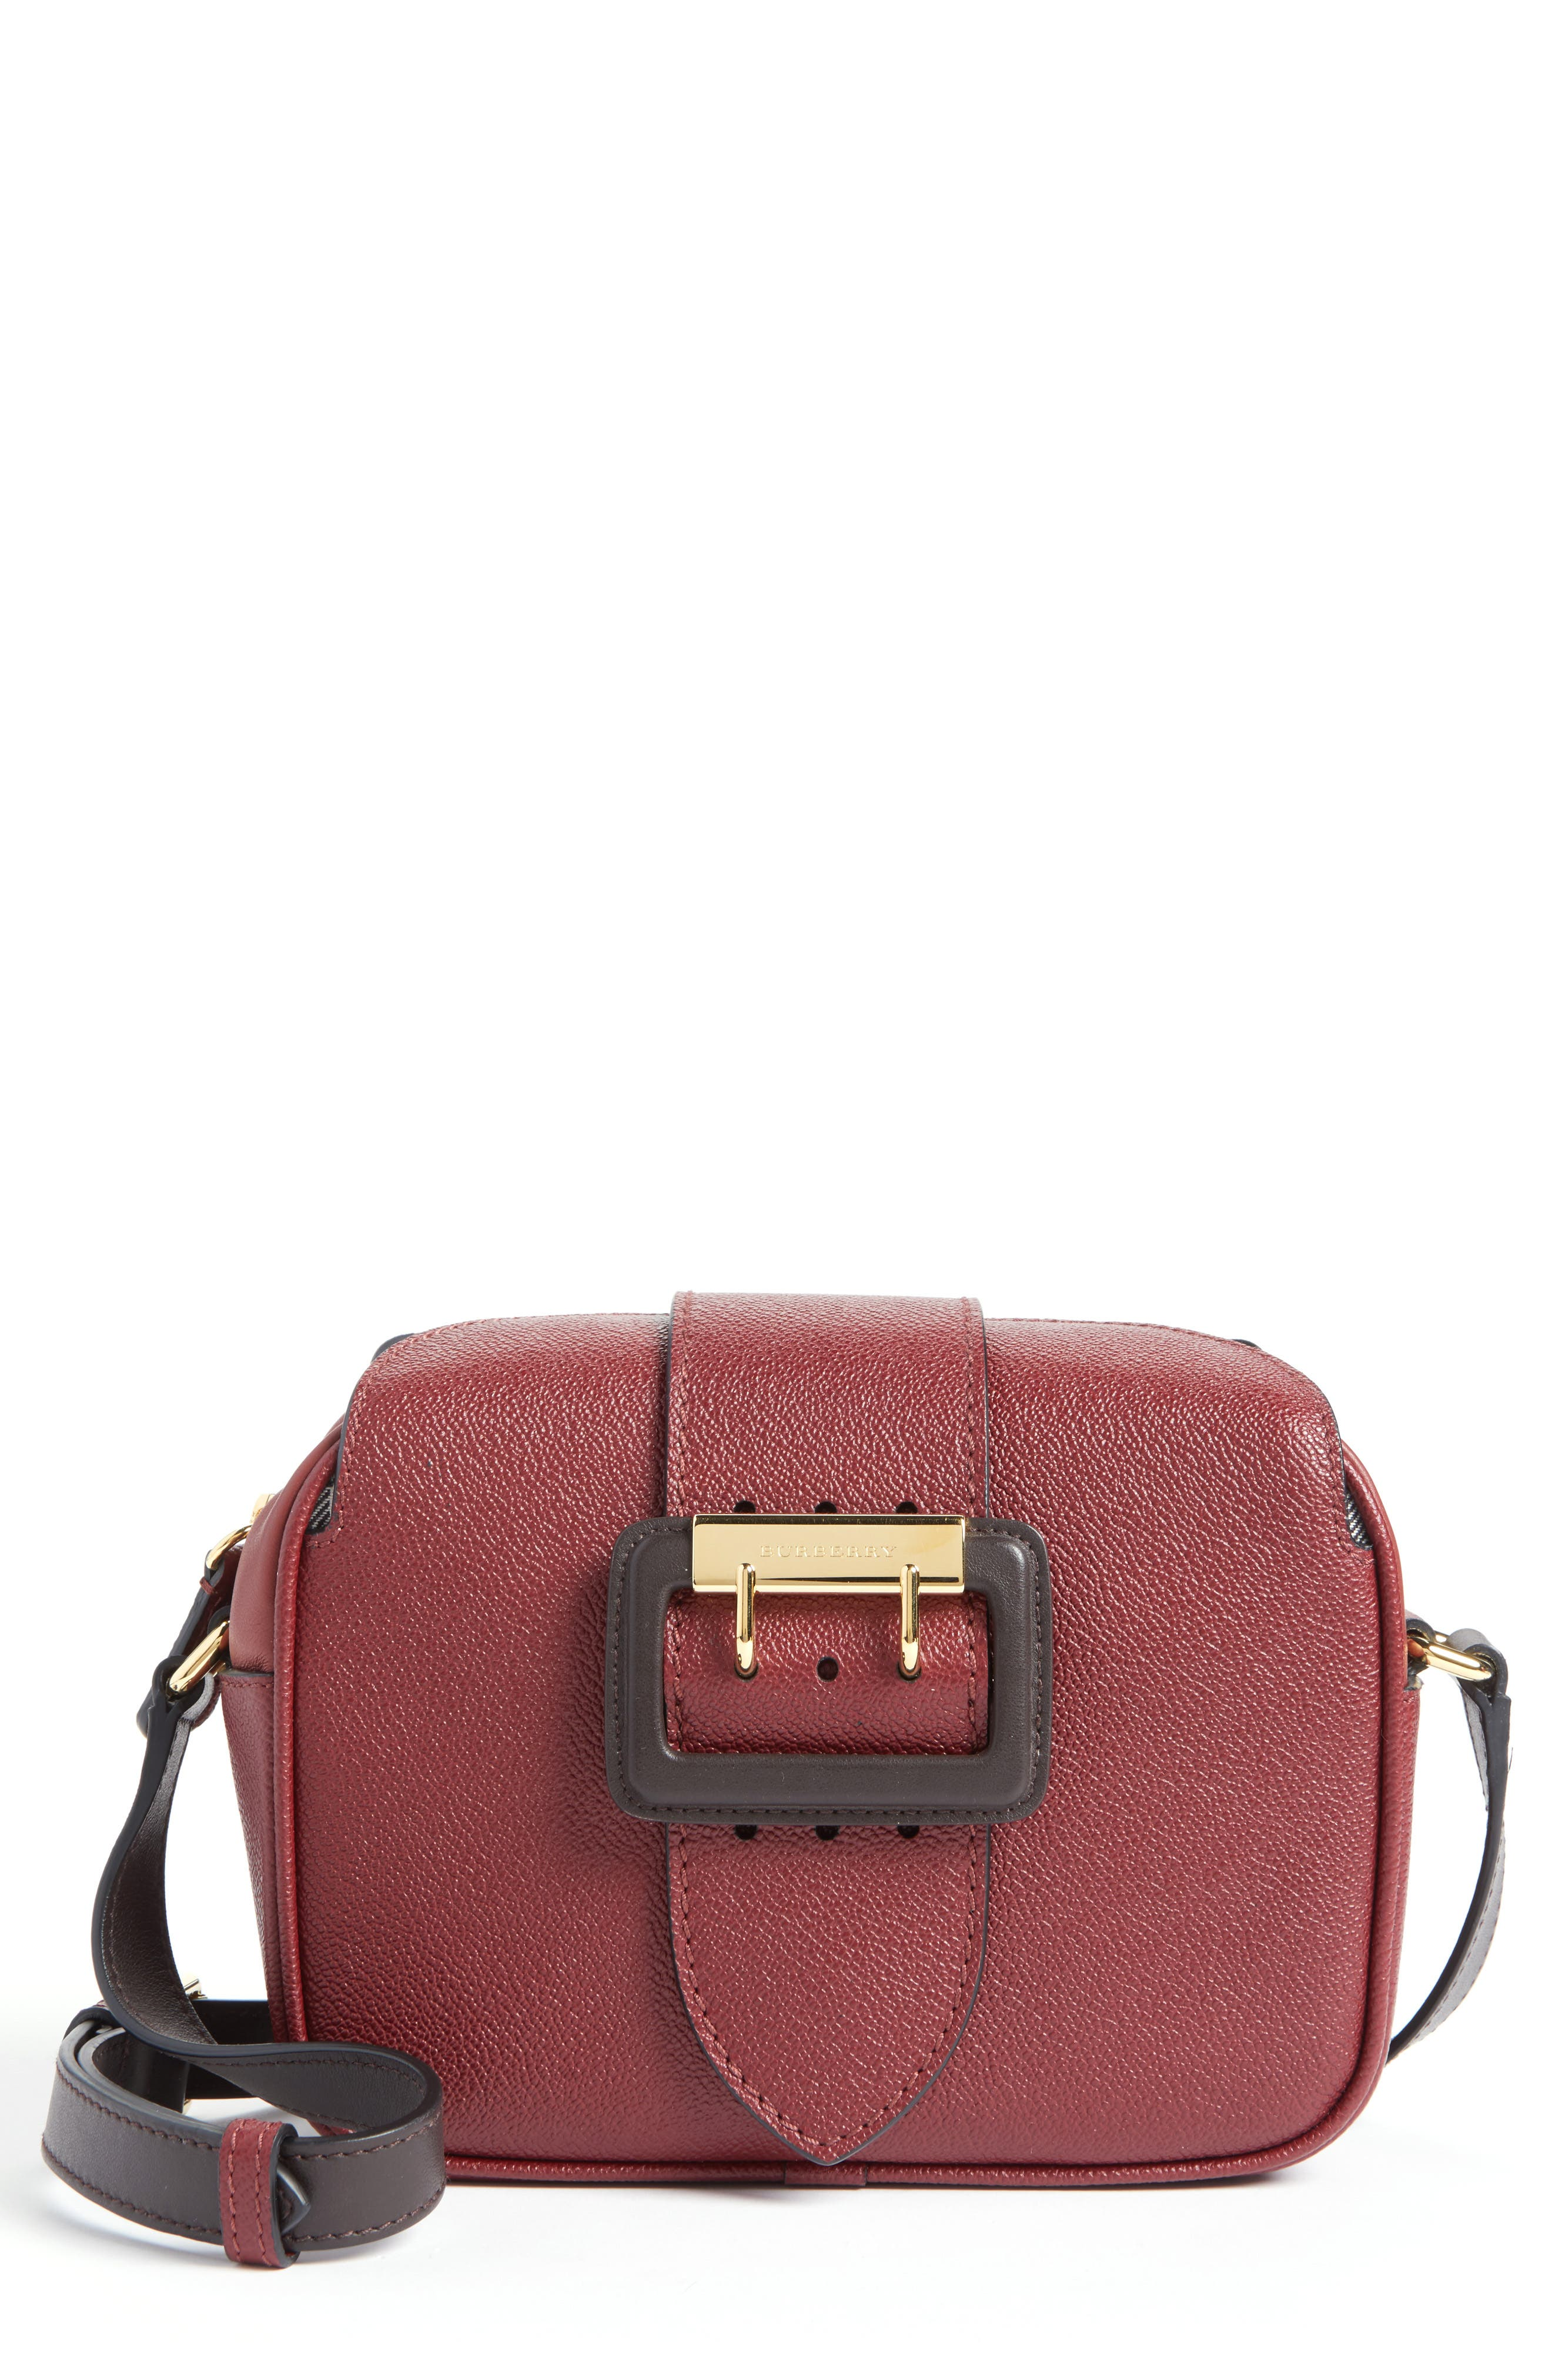 Alternate Image 1 Selected - Burberry Small Buckle Leather Camera Crossbody Bag